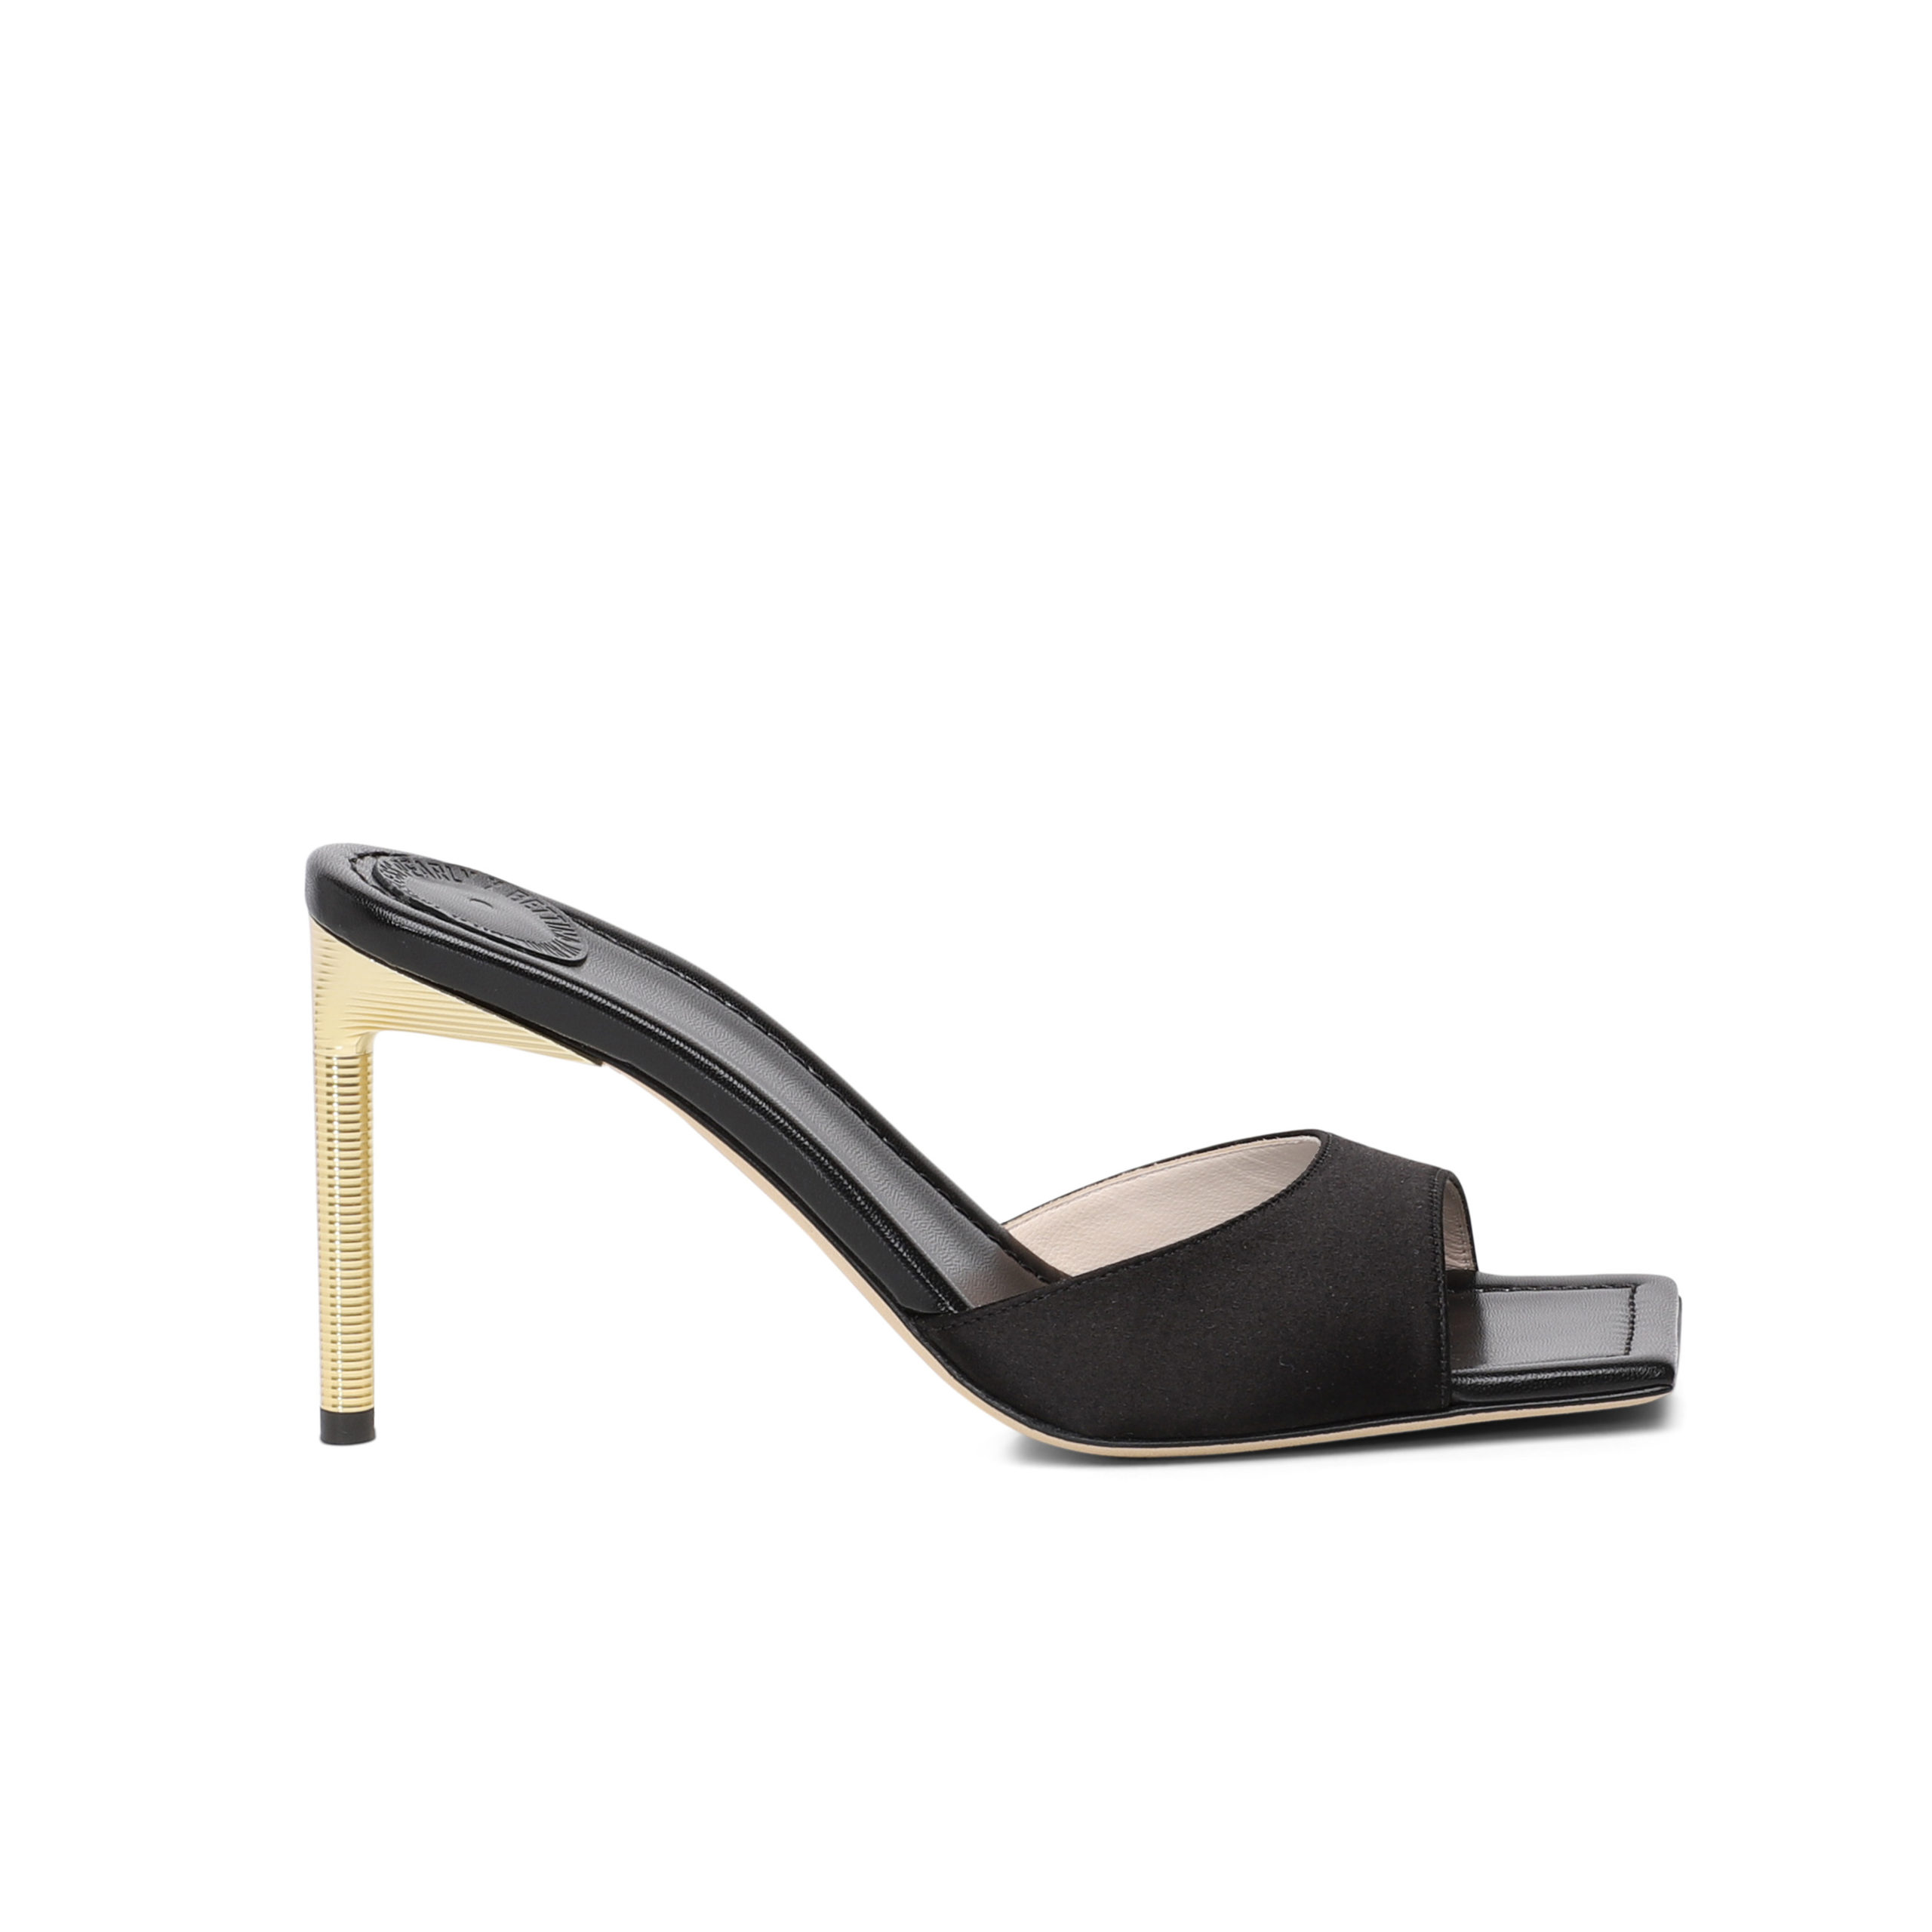 Mules Fina black by Bettina Vermillon x Timeless Pearly